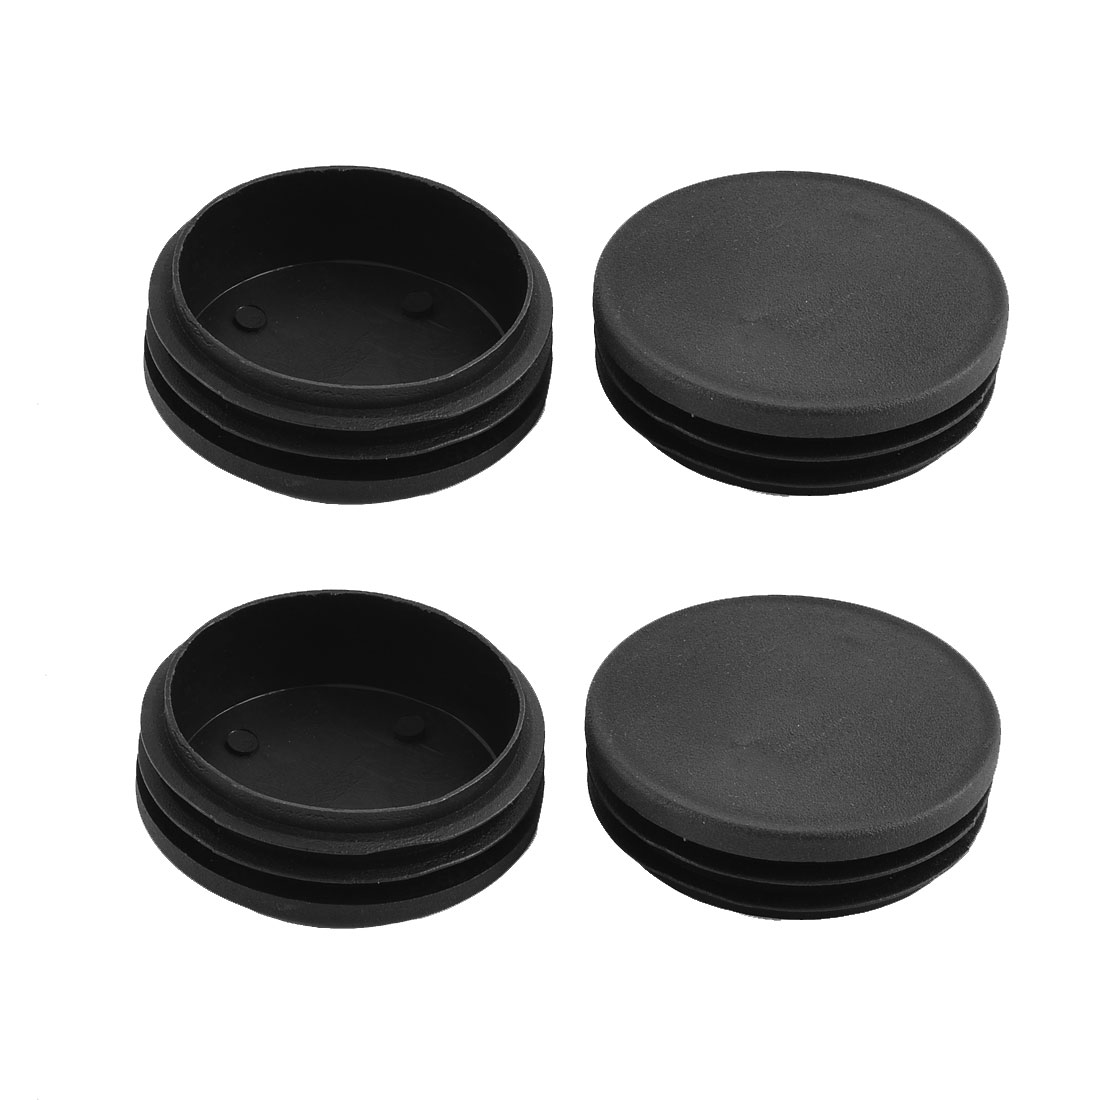 Furniture Foot Plastic Blanking End Caps Round Tube Insert Black 70mm Dia 4pcs